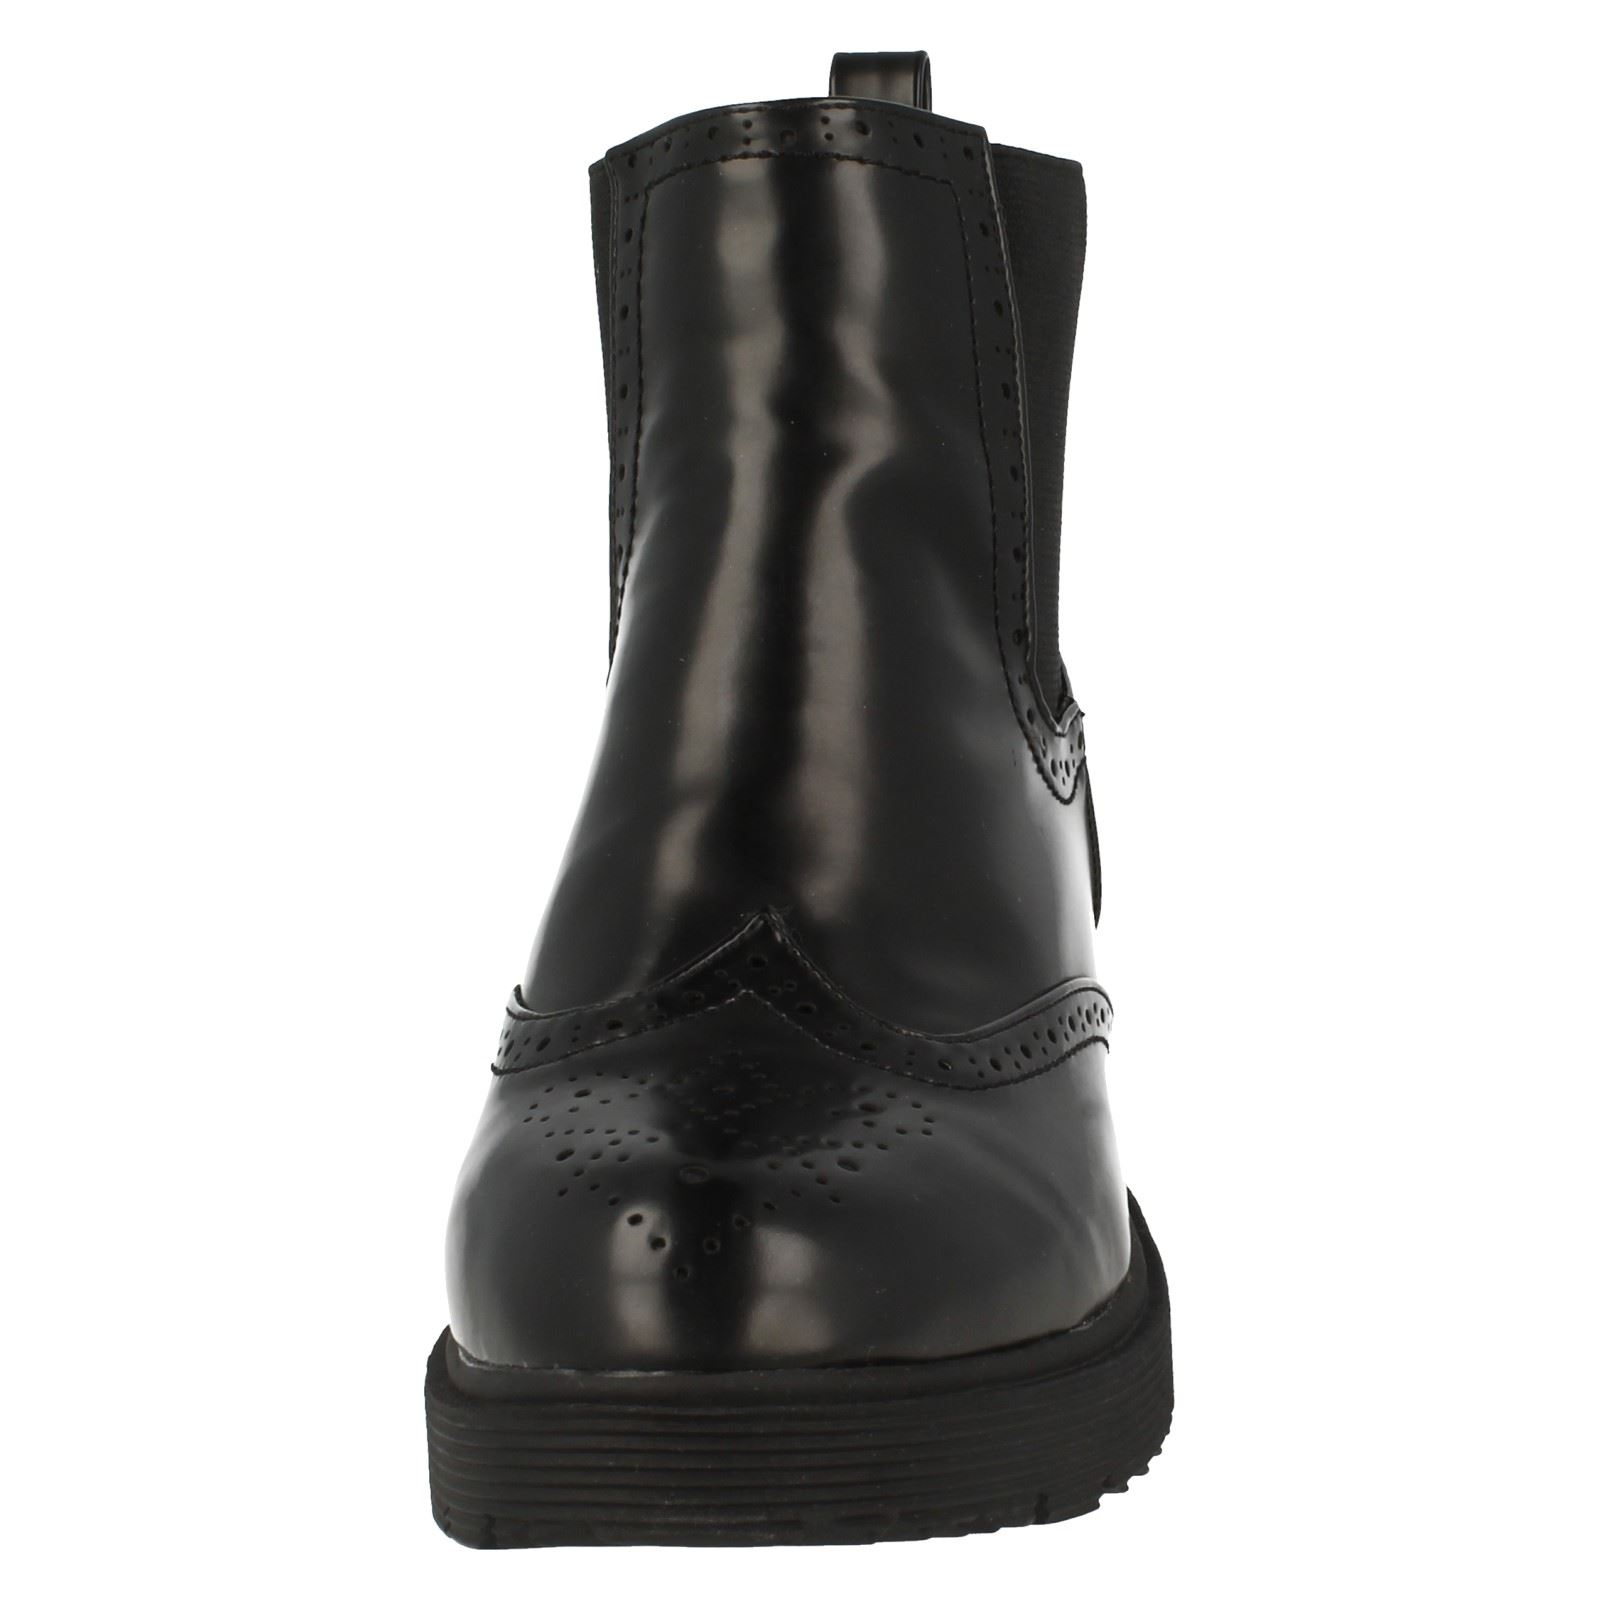 Ladies ; Country Boots ; Dealer Boot ; Wellingtons ; Boots Dealer Boot. Ariat Stanbroke £ Dr Martens Dealer Boot £ Grafter MB Dealer Boot Grafter MB Safety Dealer Boot £ Hoggs Ayr Leather Soled Dealer £ NPS English Made All Leather Brogue dealer boot £ NPS English Made All Leather Plain Dealer Boot.